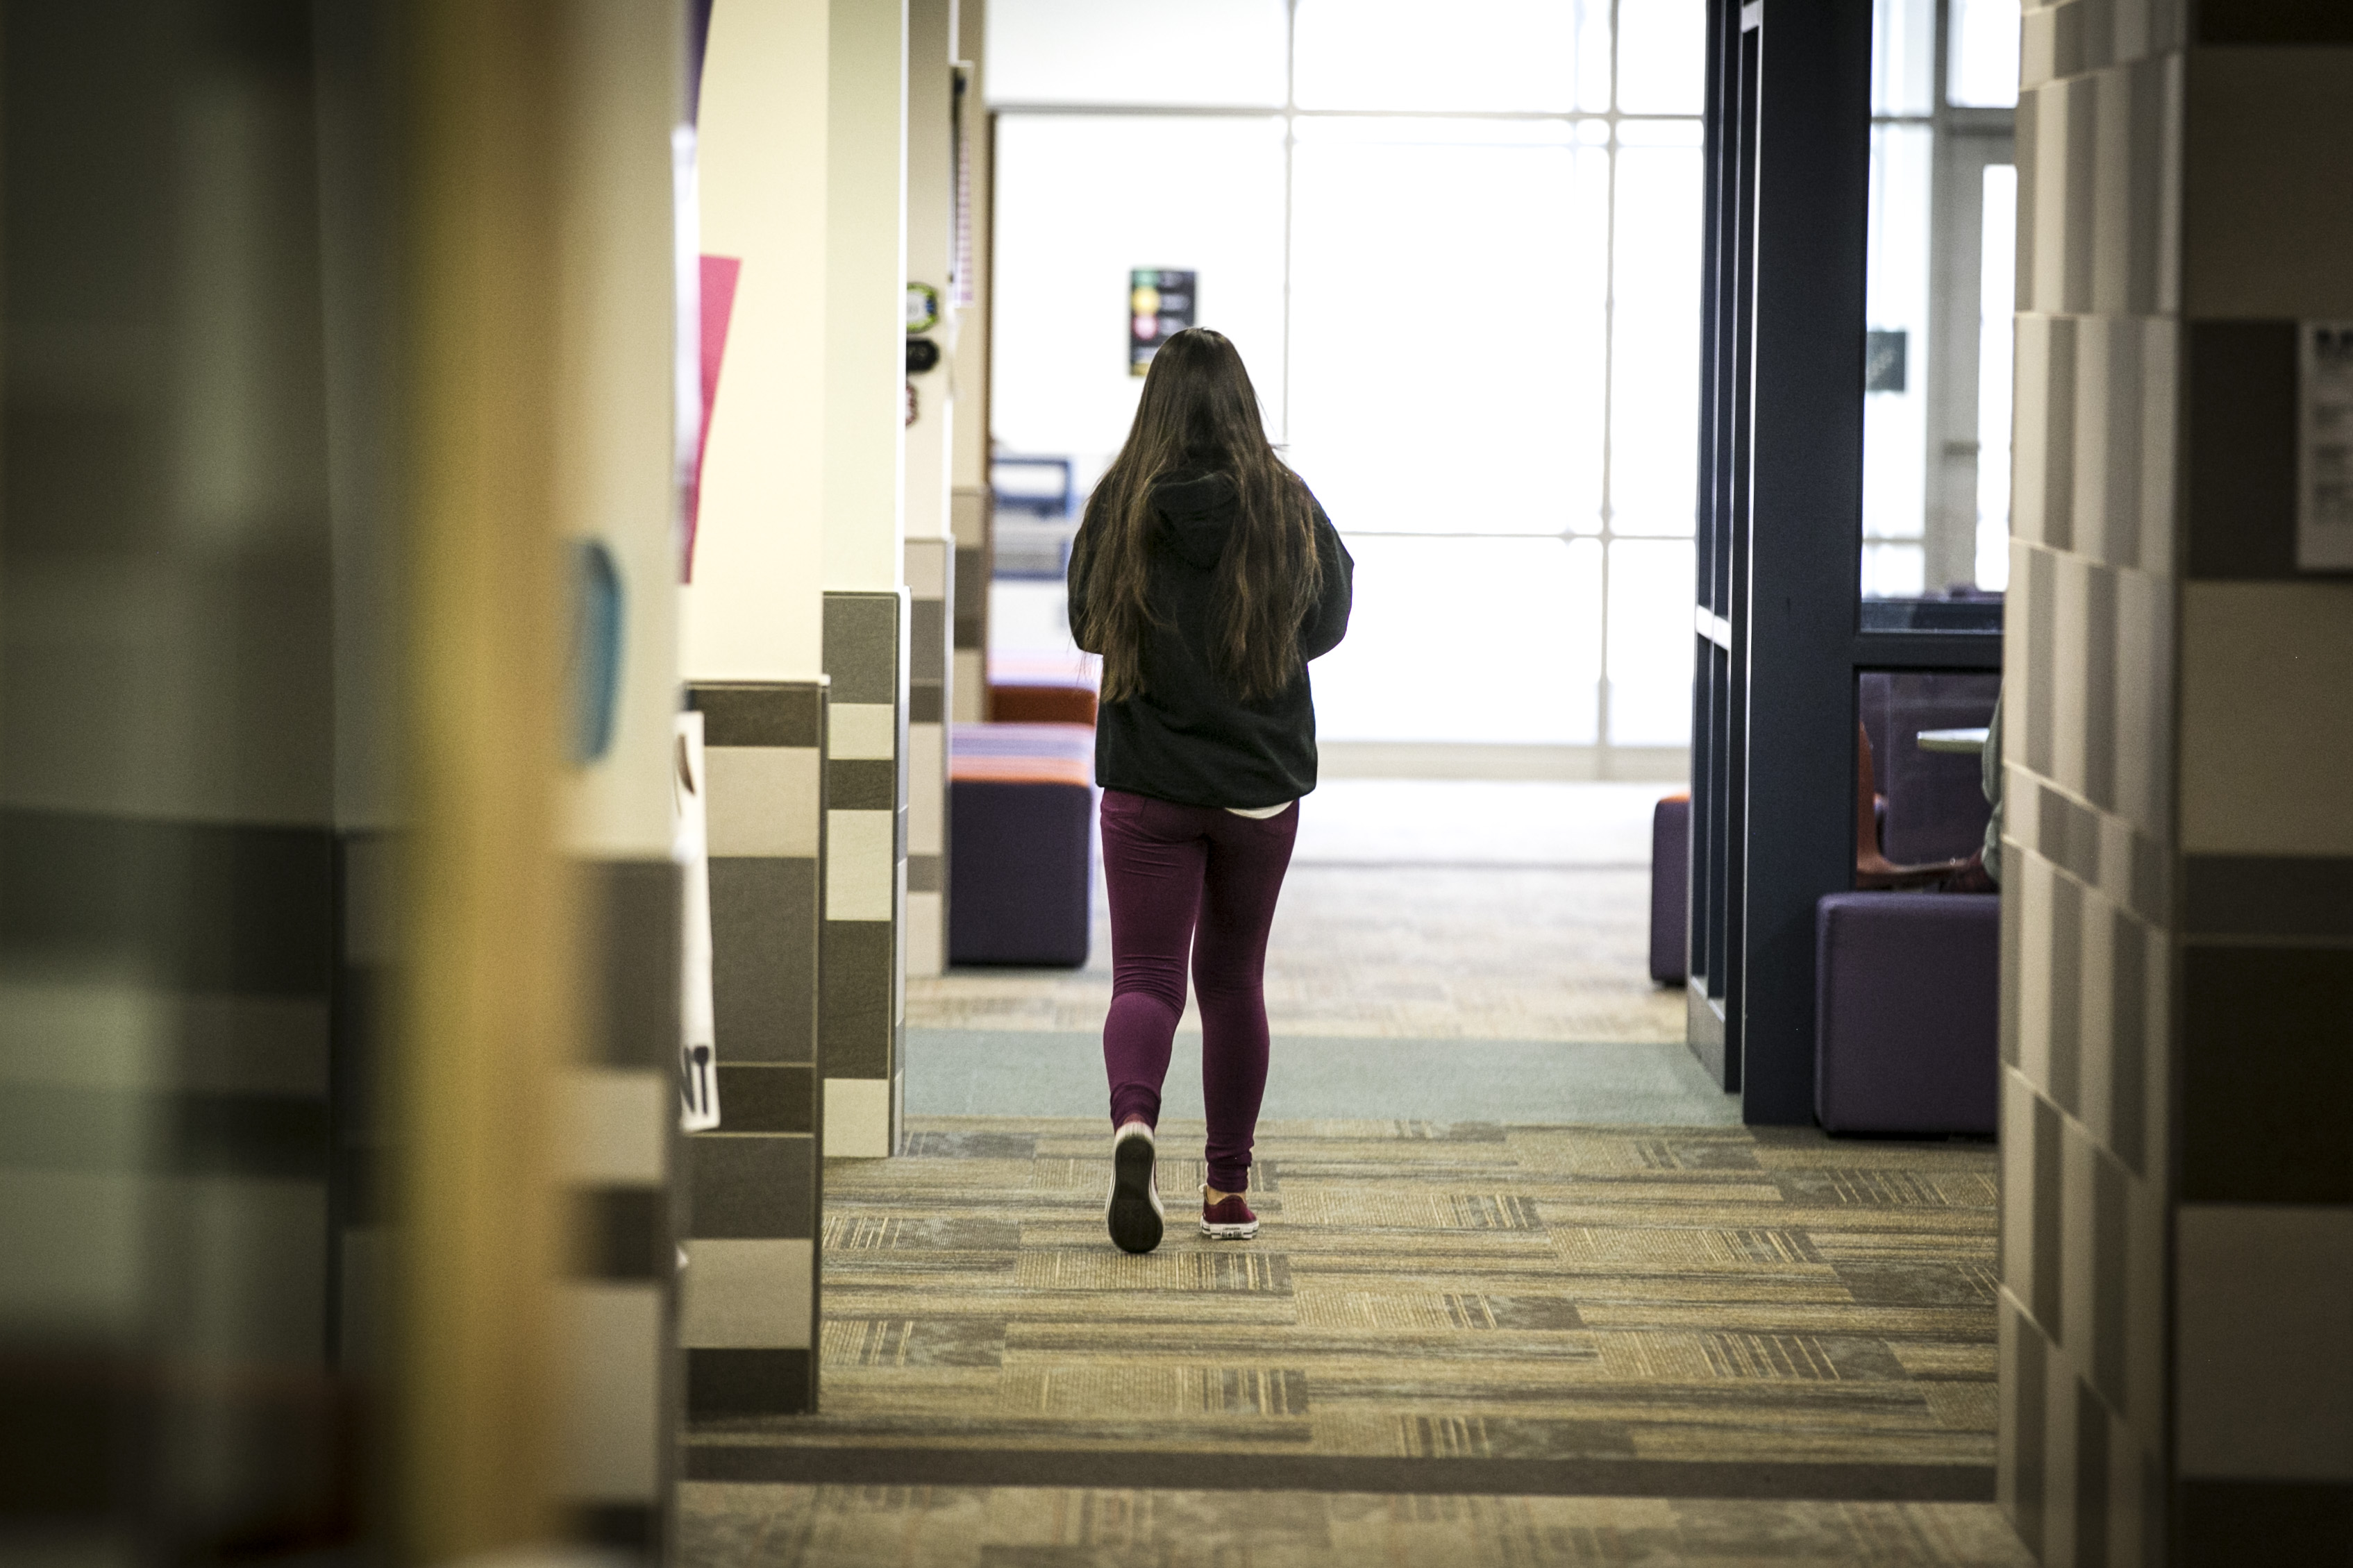 Photo: Fort Logan Northgate student 1 | Walking Down Hall